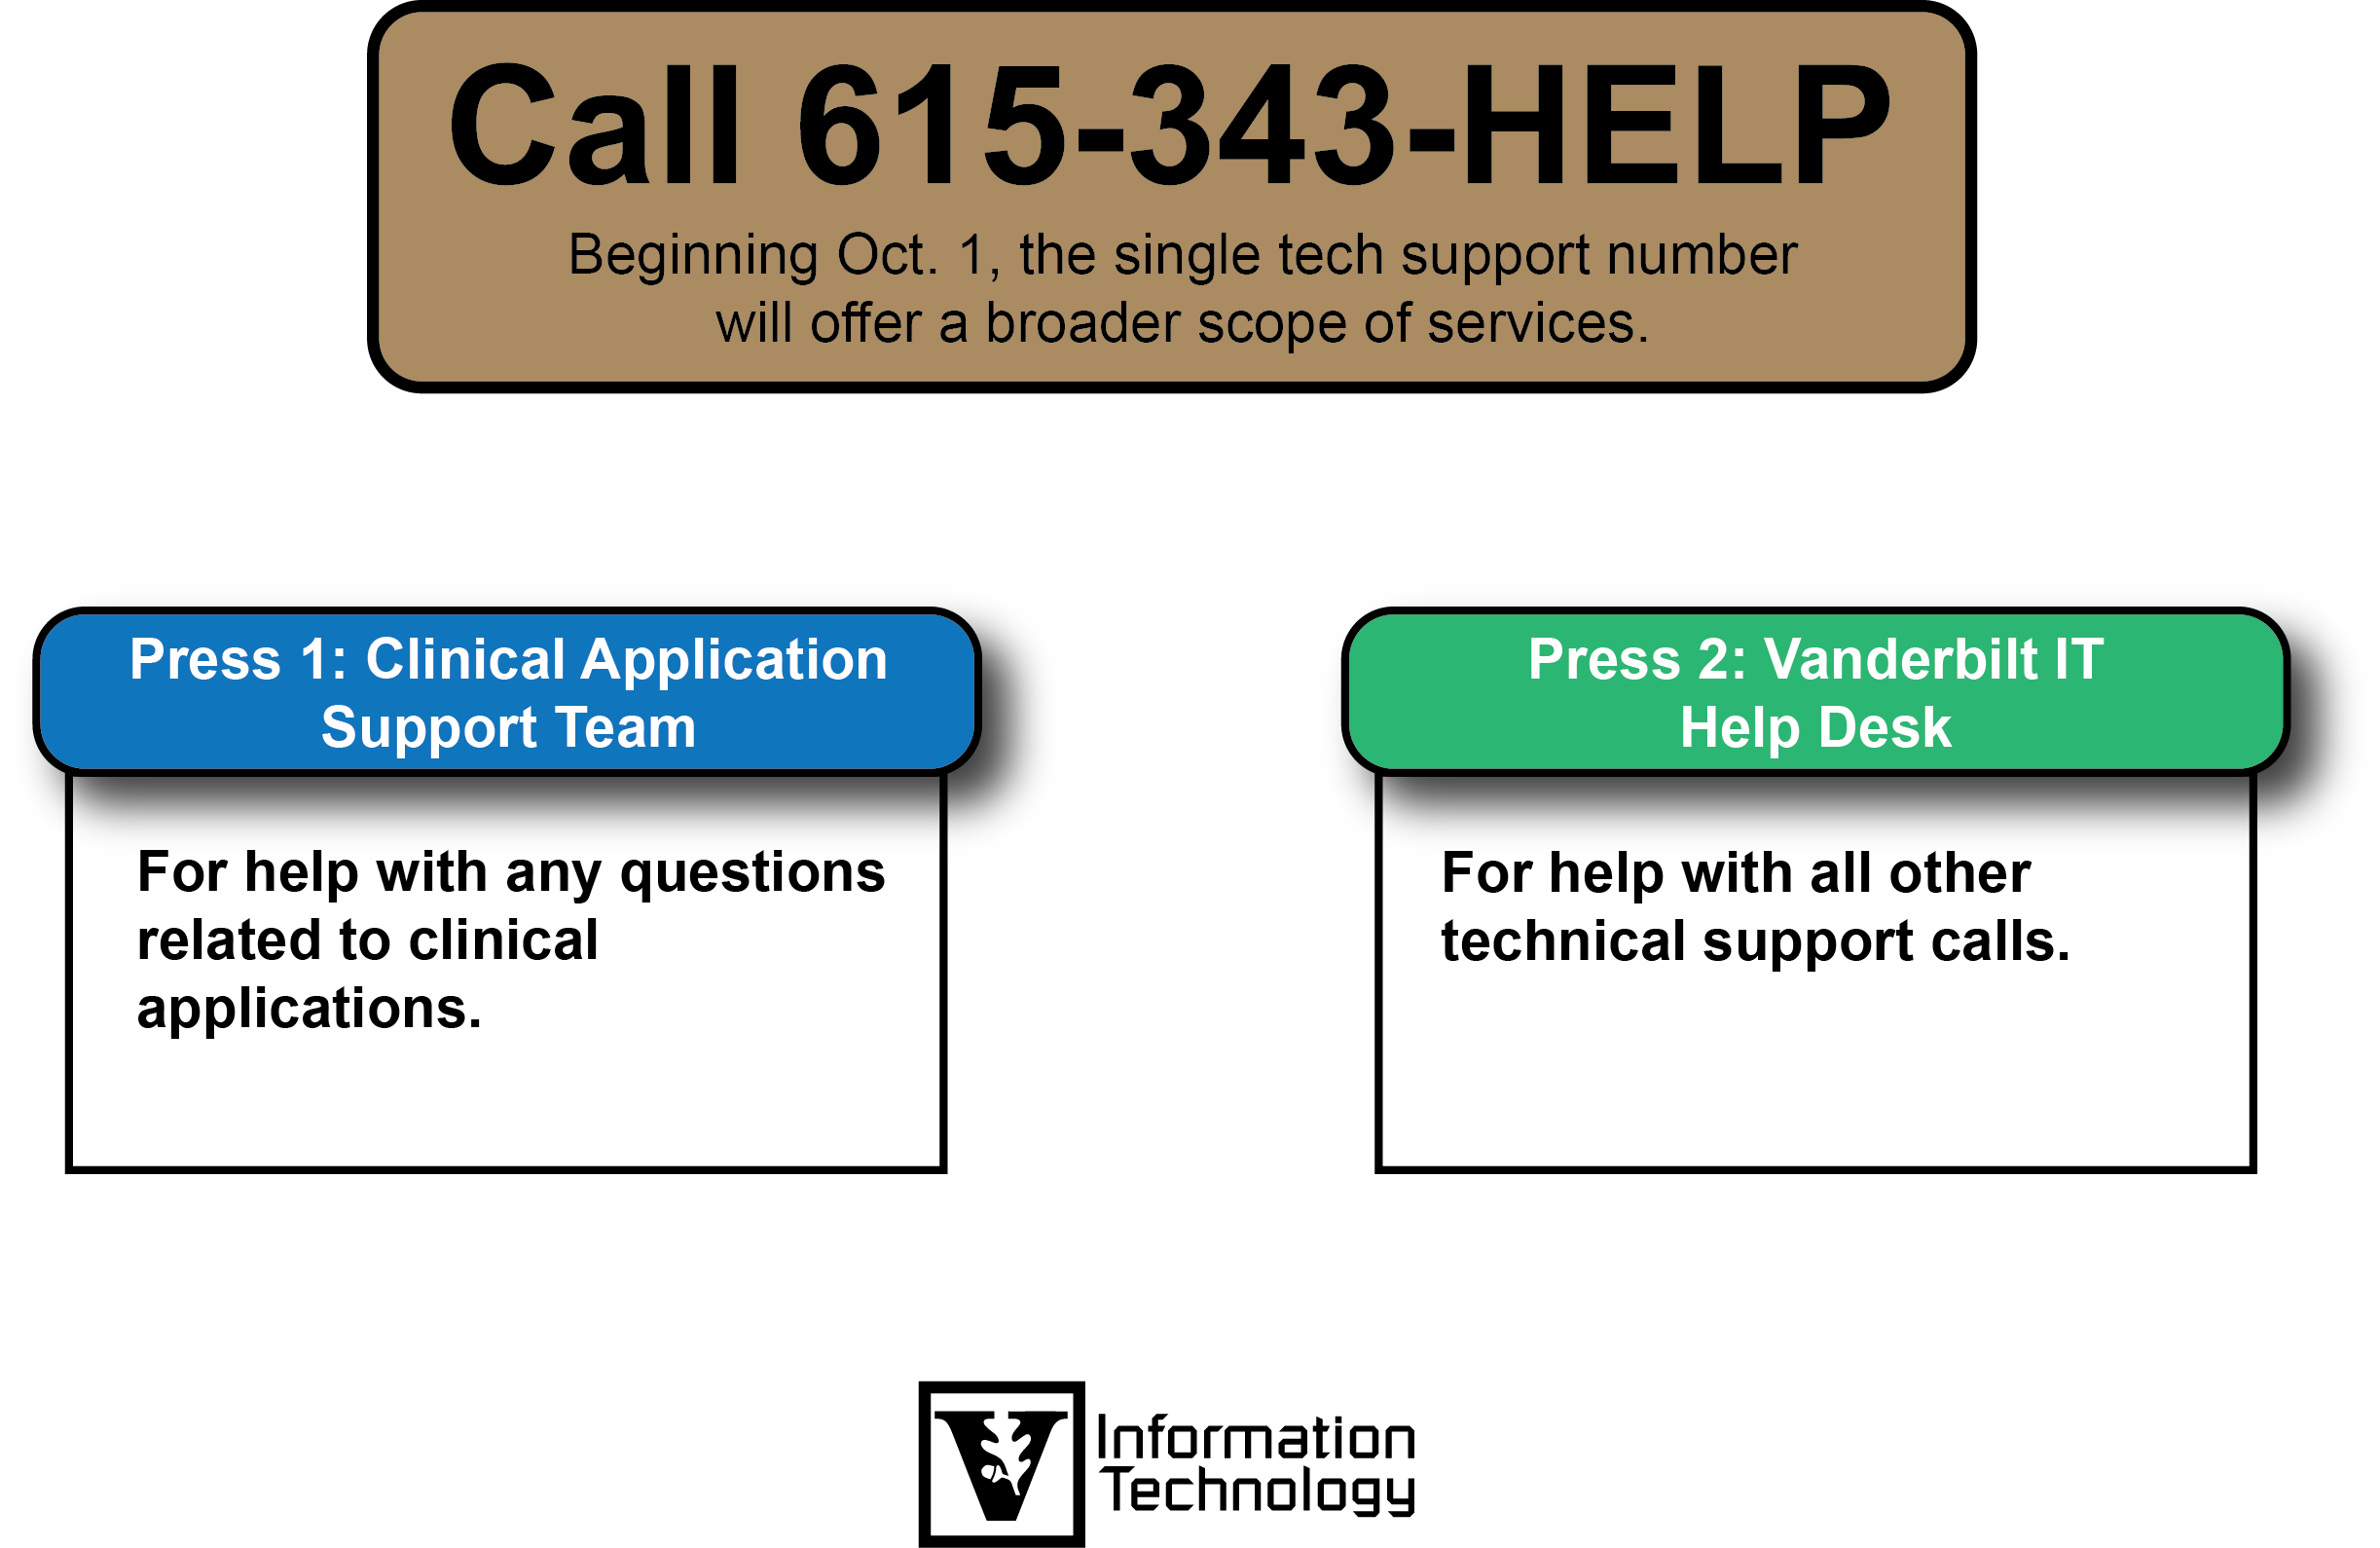 mc helpdesk vanderbilt it vanderbilt university vanderbilt it help desk